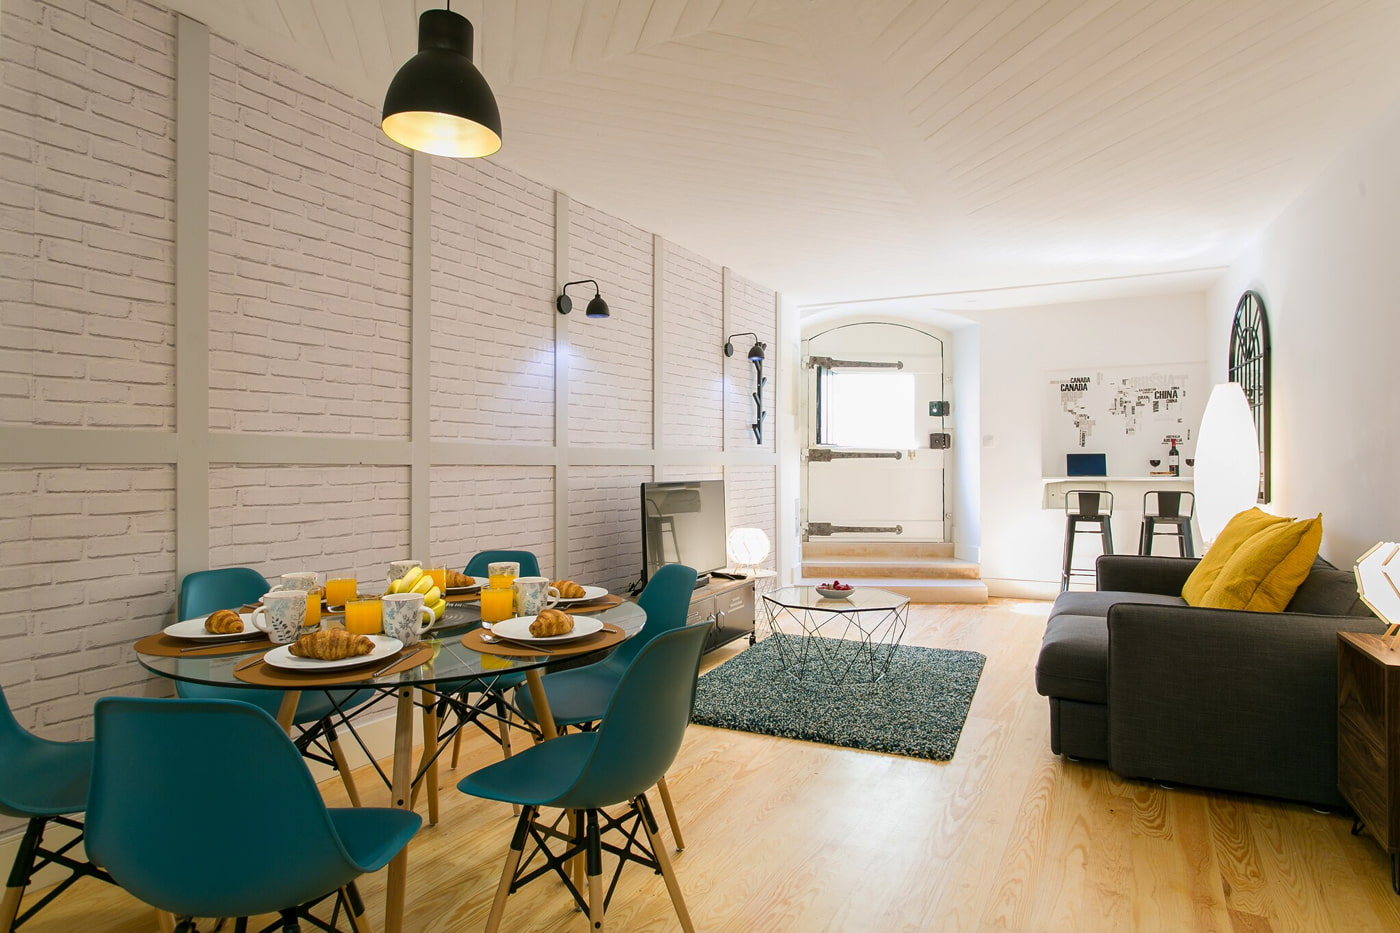 Rental apartment in Lisbon